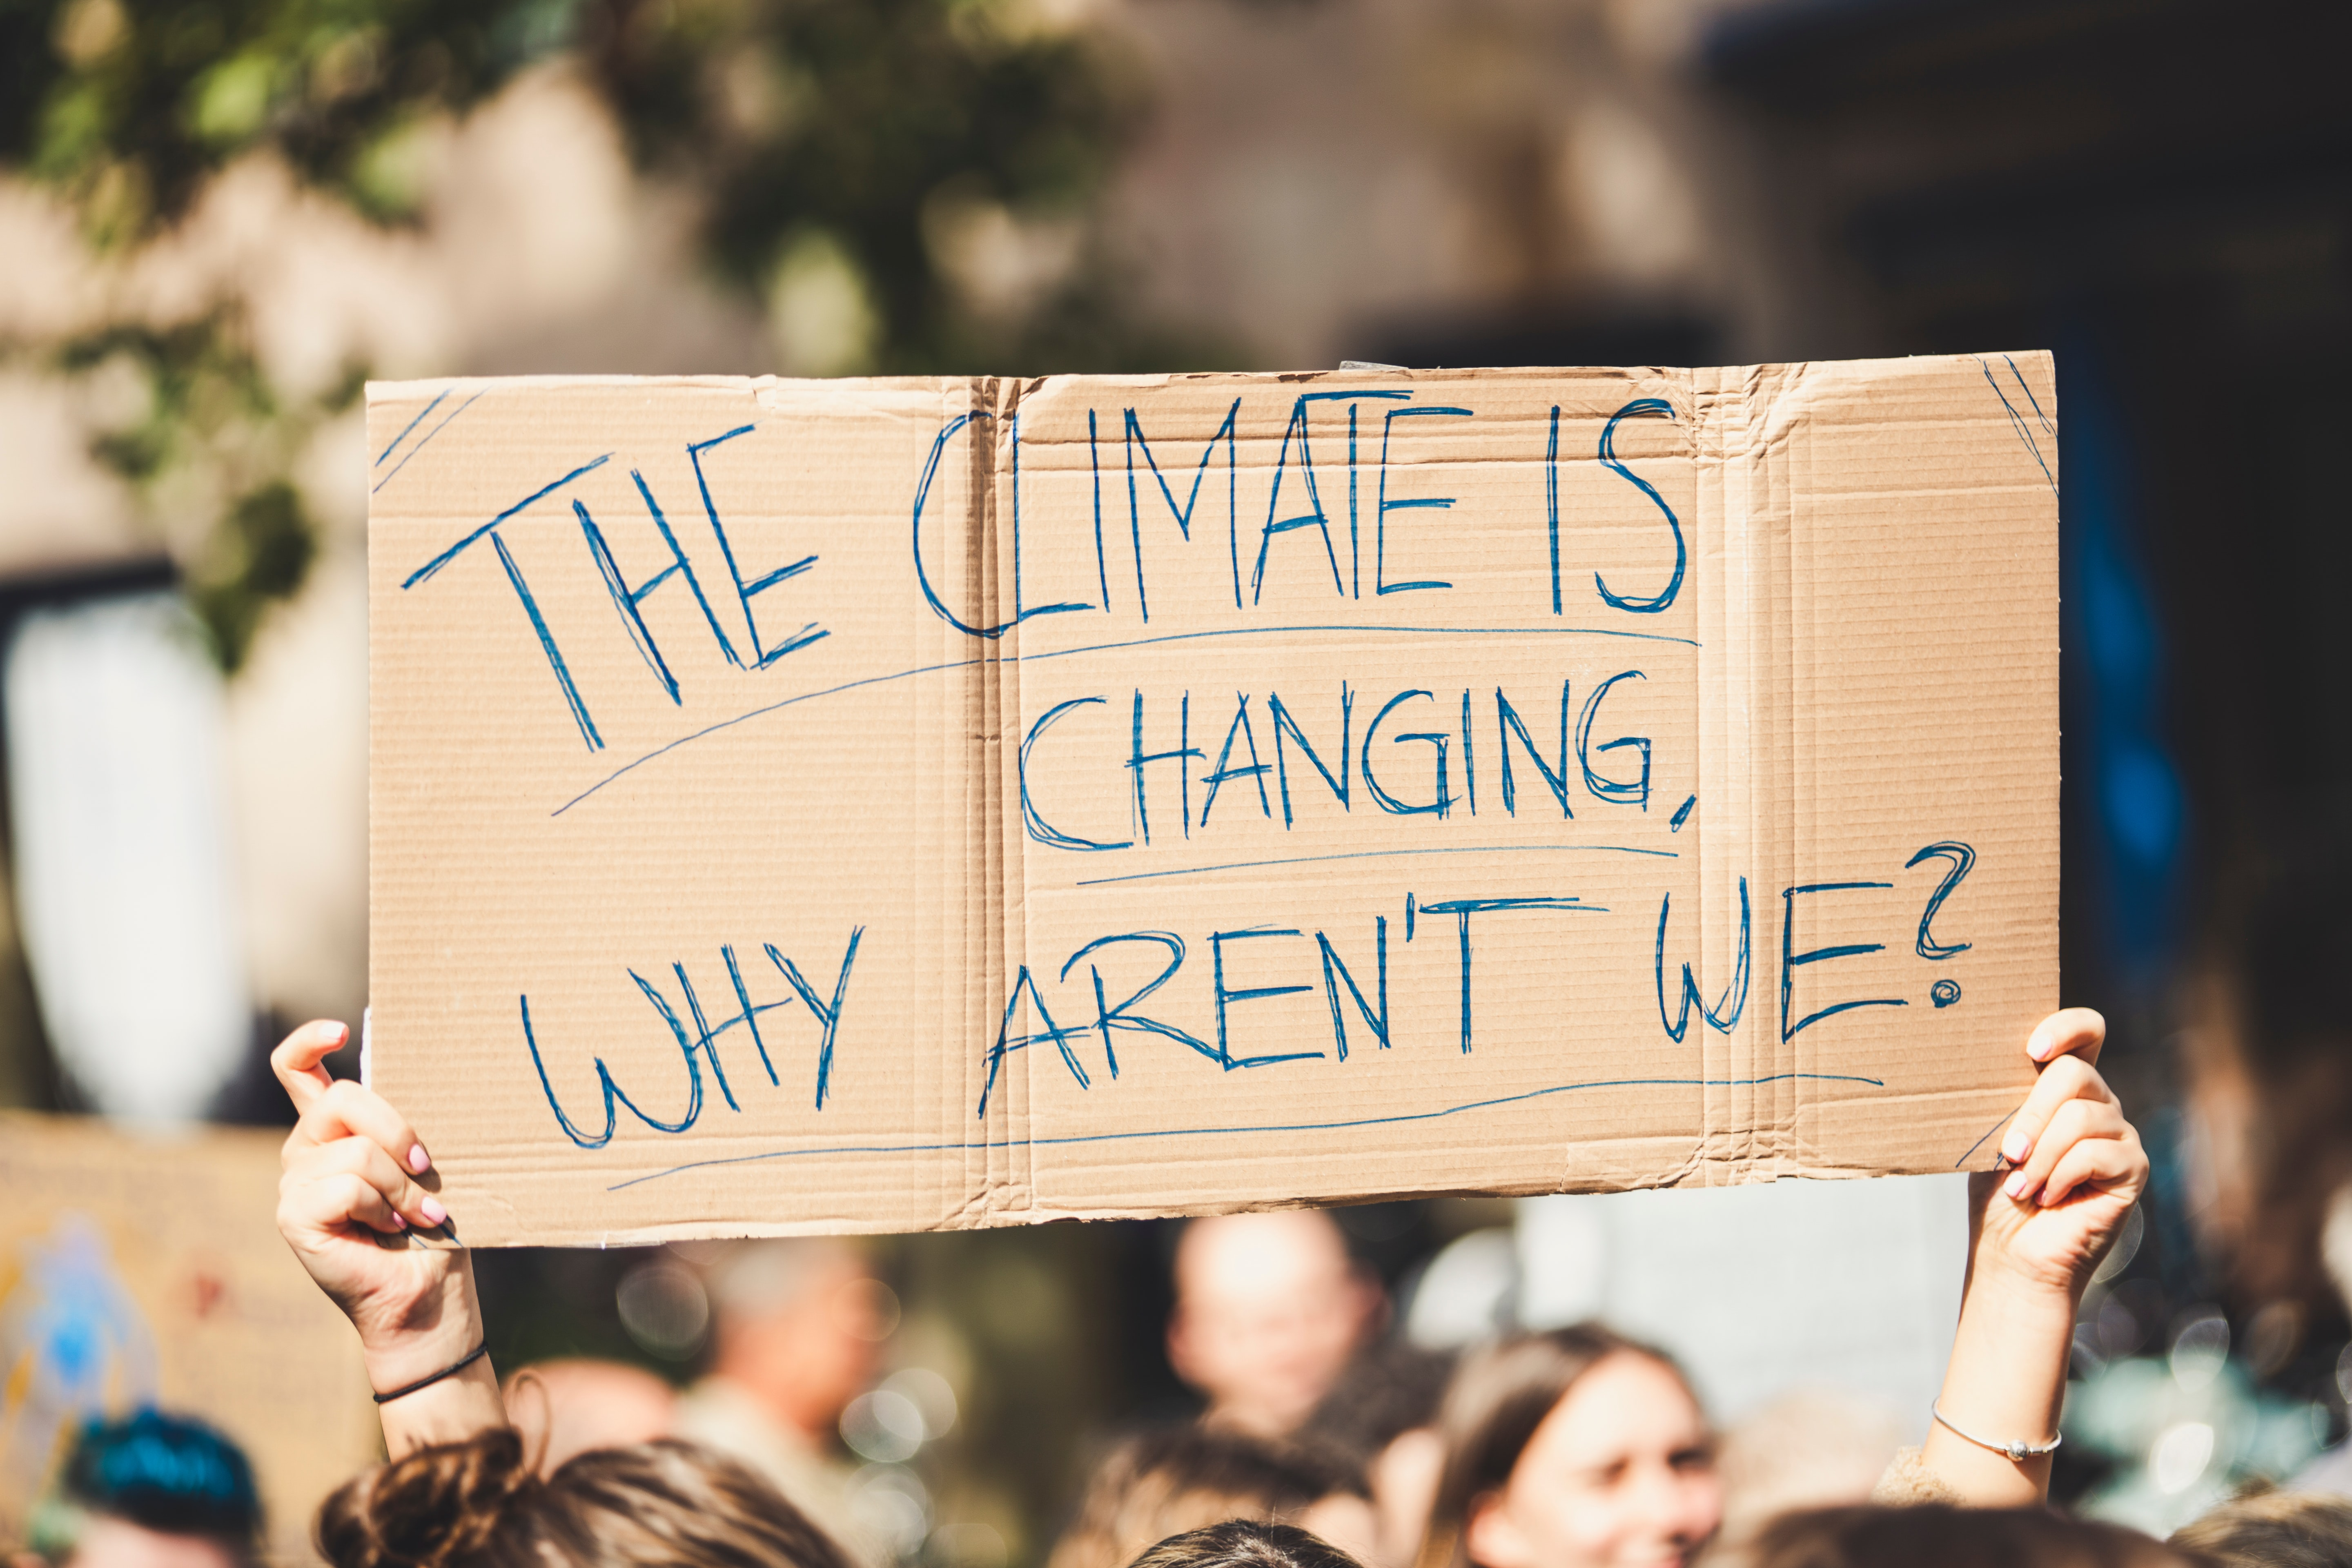 The climate is changing why aren't we?